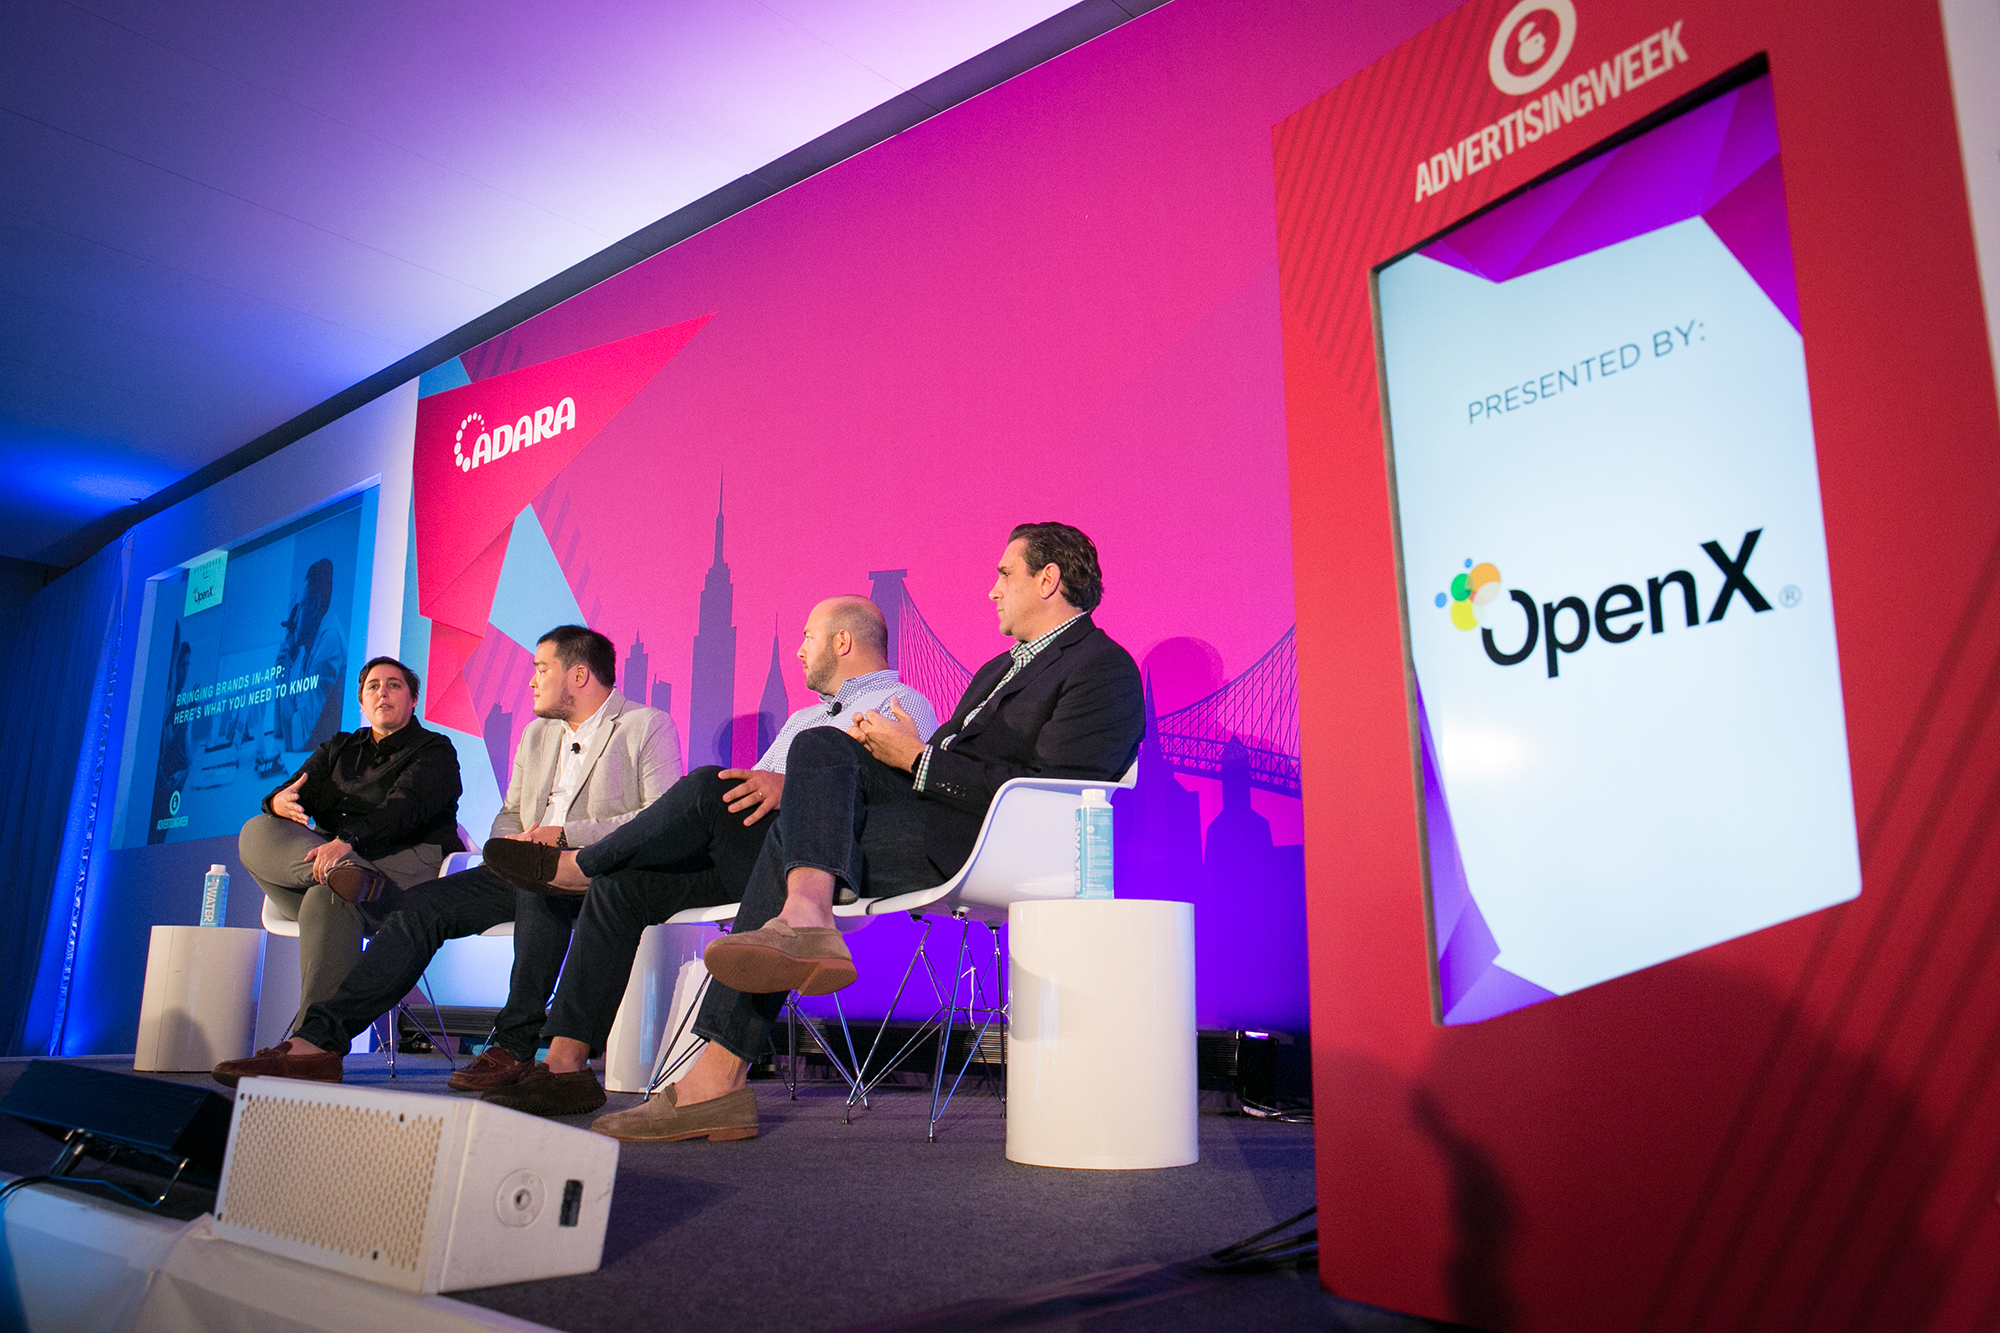 OX Blog AdWeekDay1 Maggie - Advertising Week New York Day 1: Mobile and the Future of Programmatic